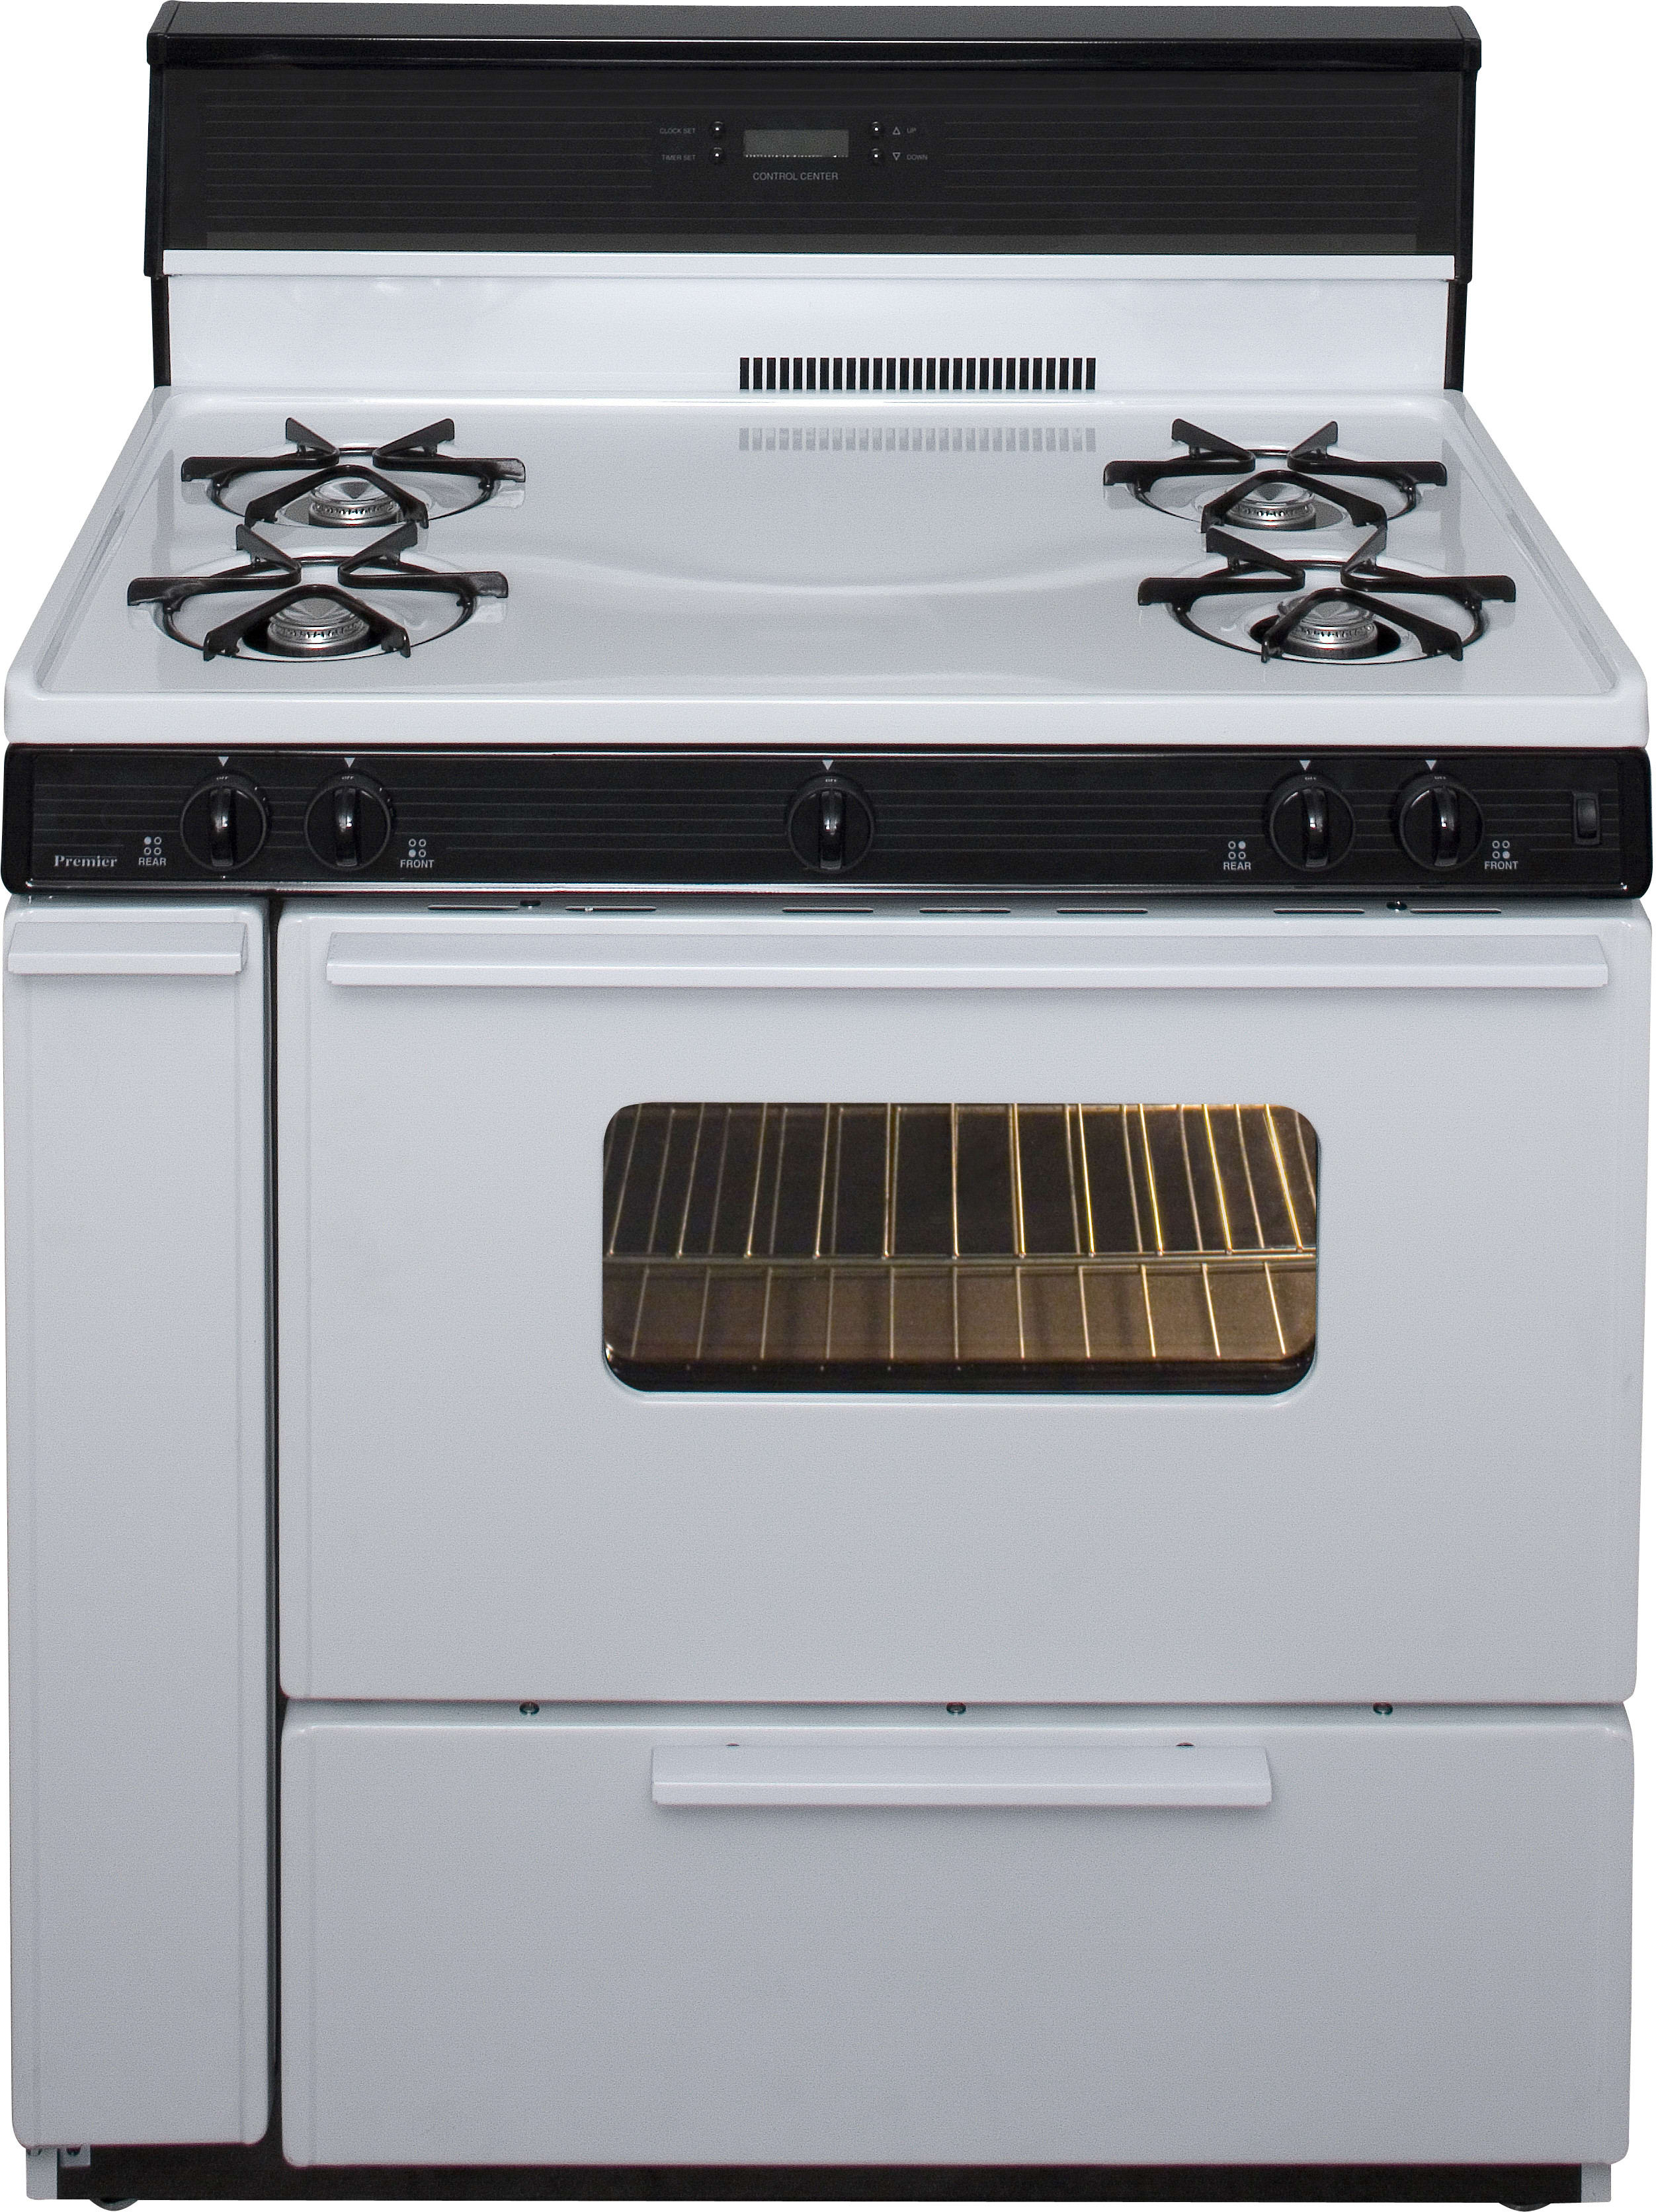 Premier Slk240wp 36 Inch Freestanding Gas Range With 4 Open Burners Electronic Ignition Clock Timer Oven Interior Light 17 000 Btu